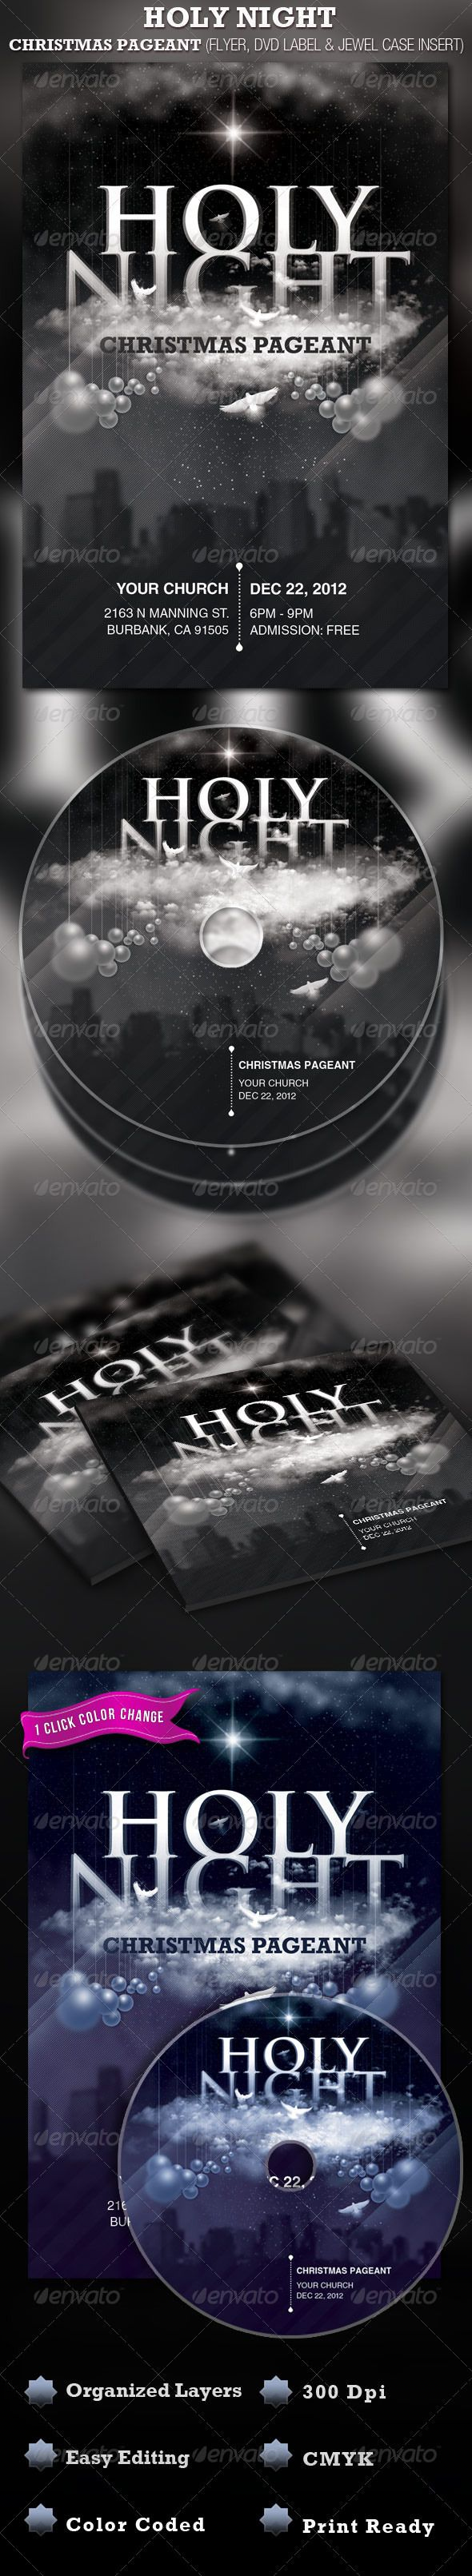 Holy Night Christmas Church Flyer and CD Label Template is geared towards usage in any Contemporary Church Event, use it for Christmas Sermons, Pageants and Musicals, etc. In this package you¡¯ll find 3 Photoshop files. All layers in the files are arranged, c